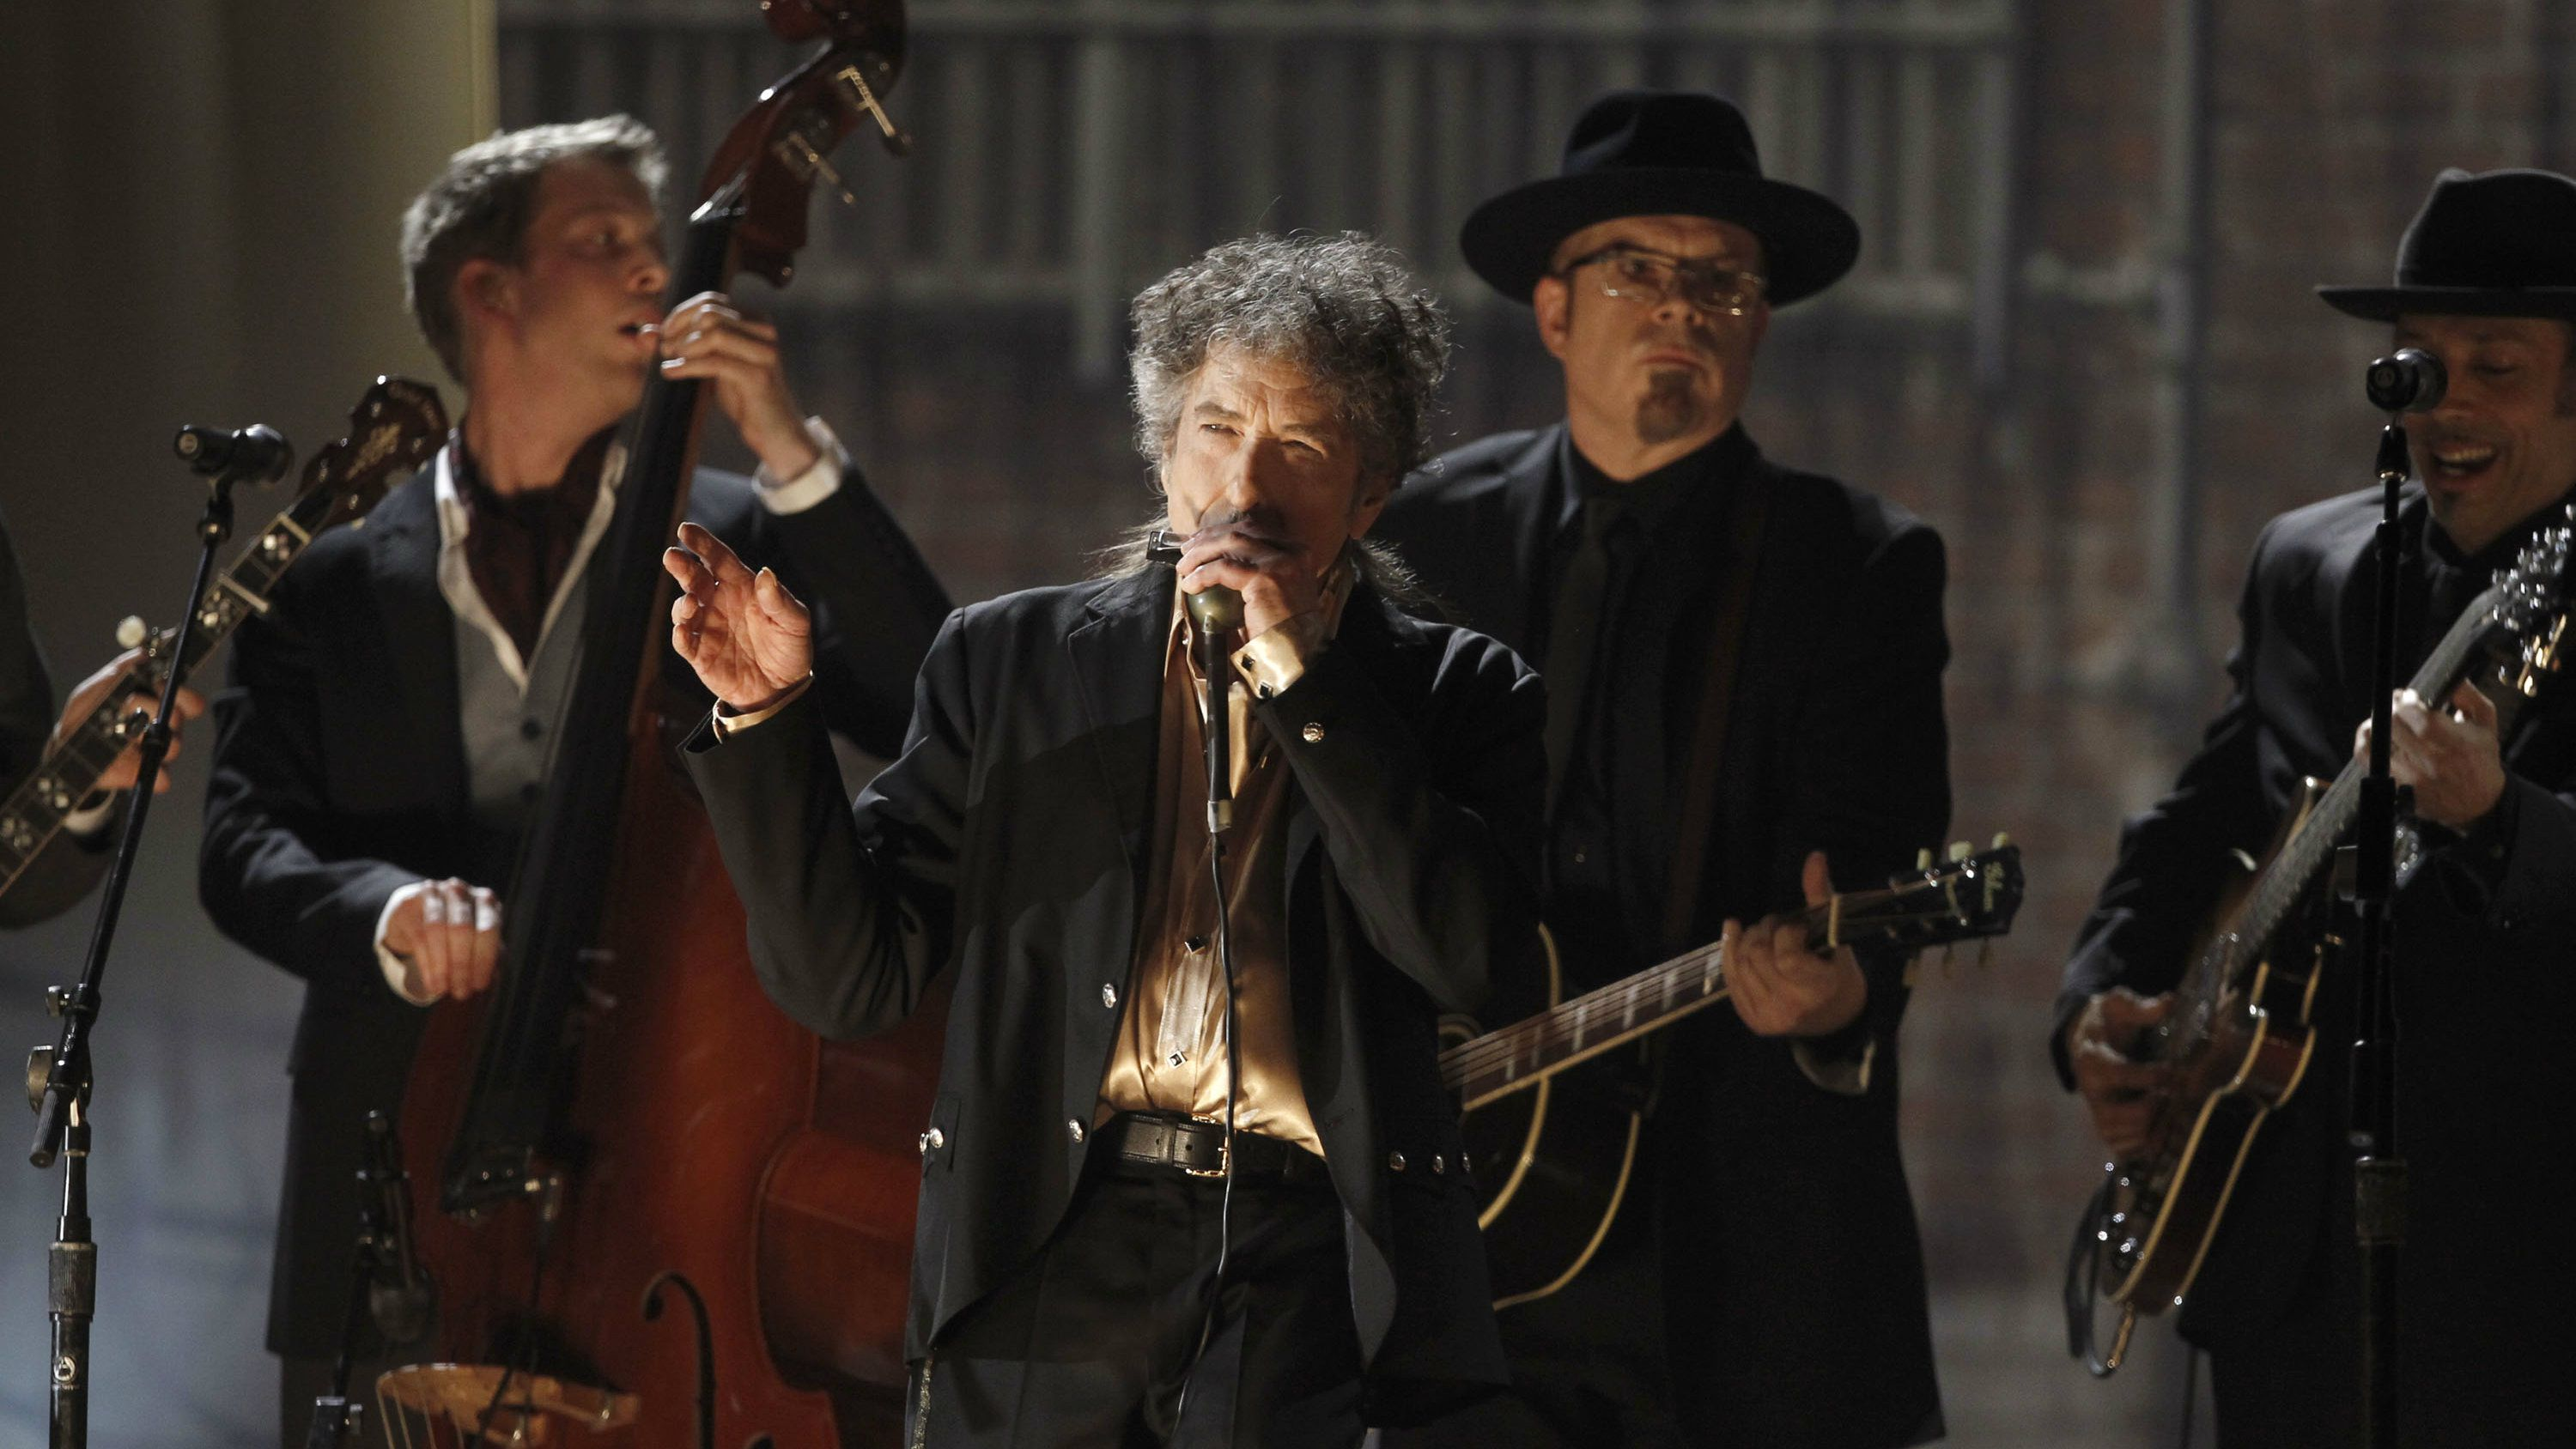 Dylan end of an era in music